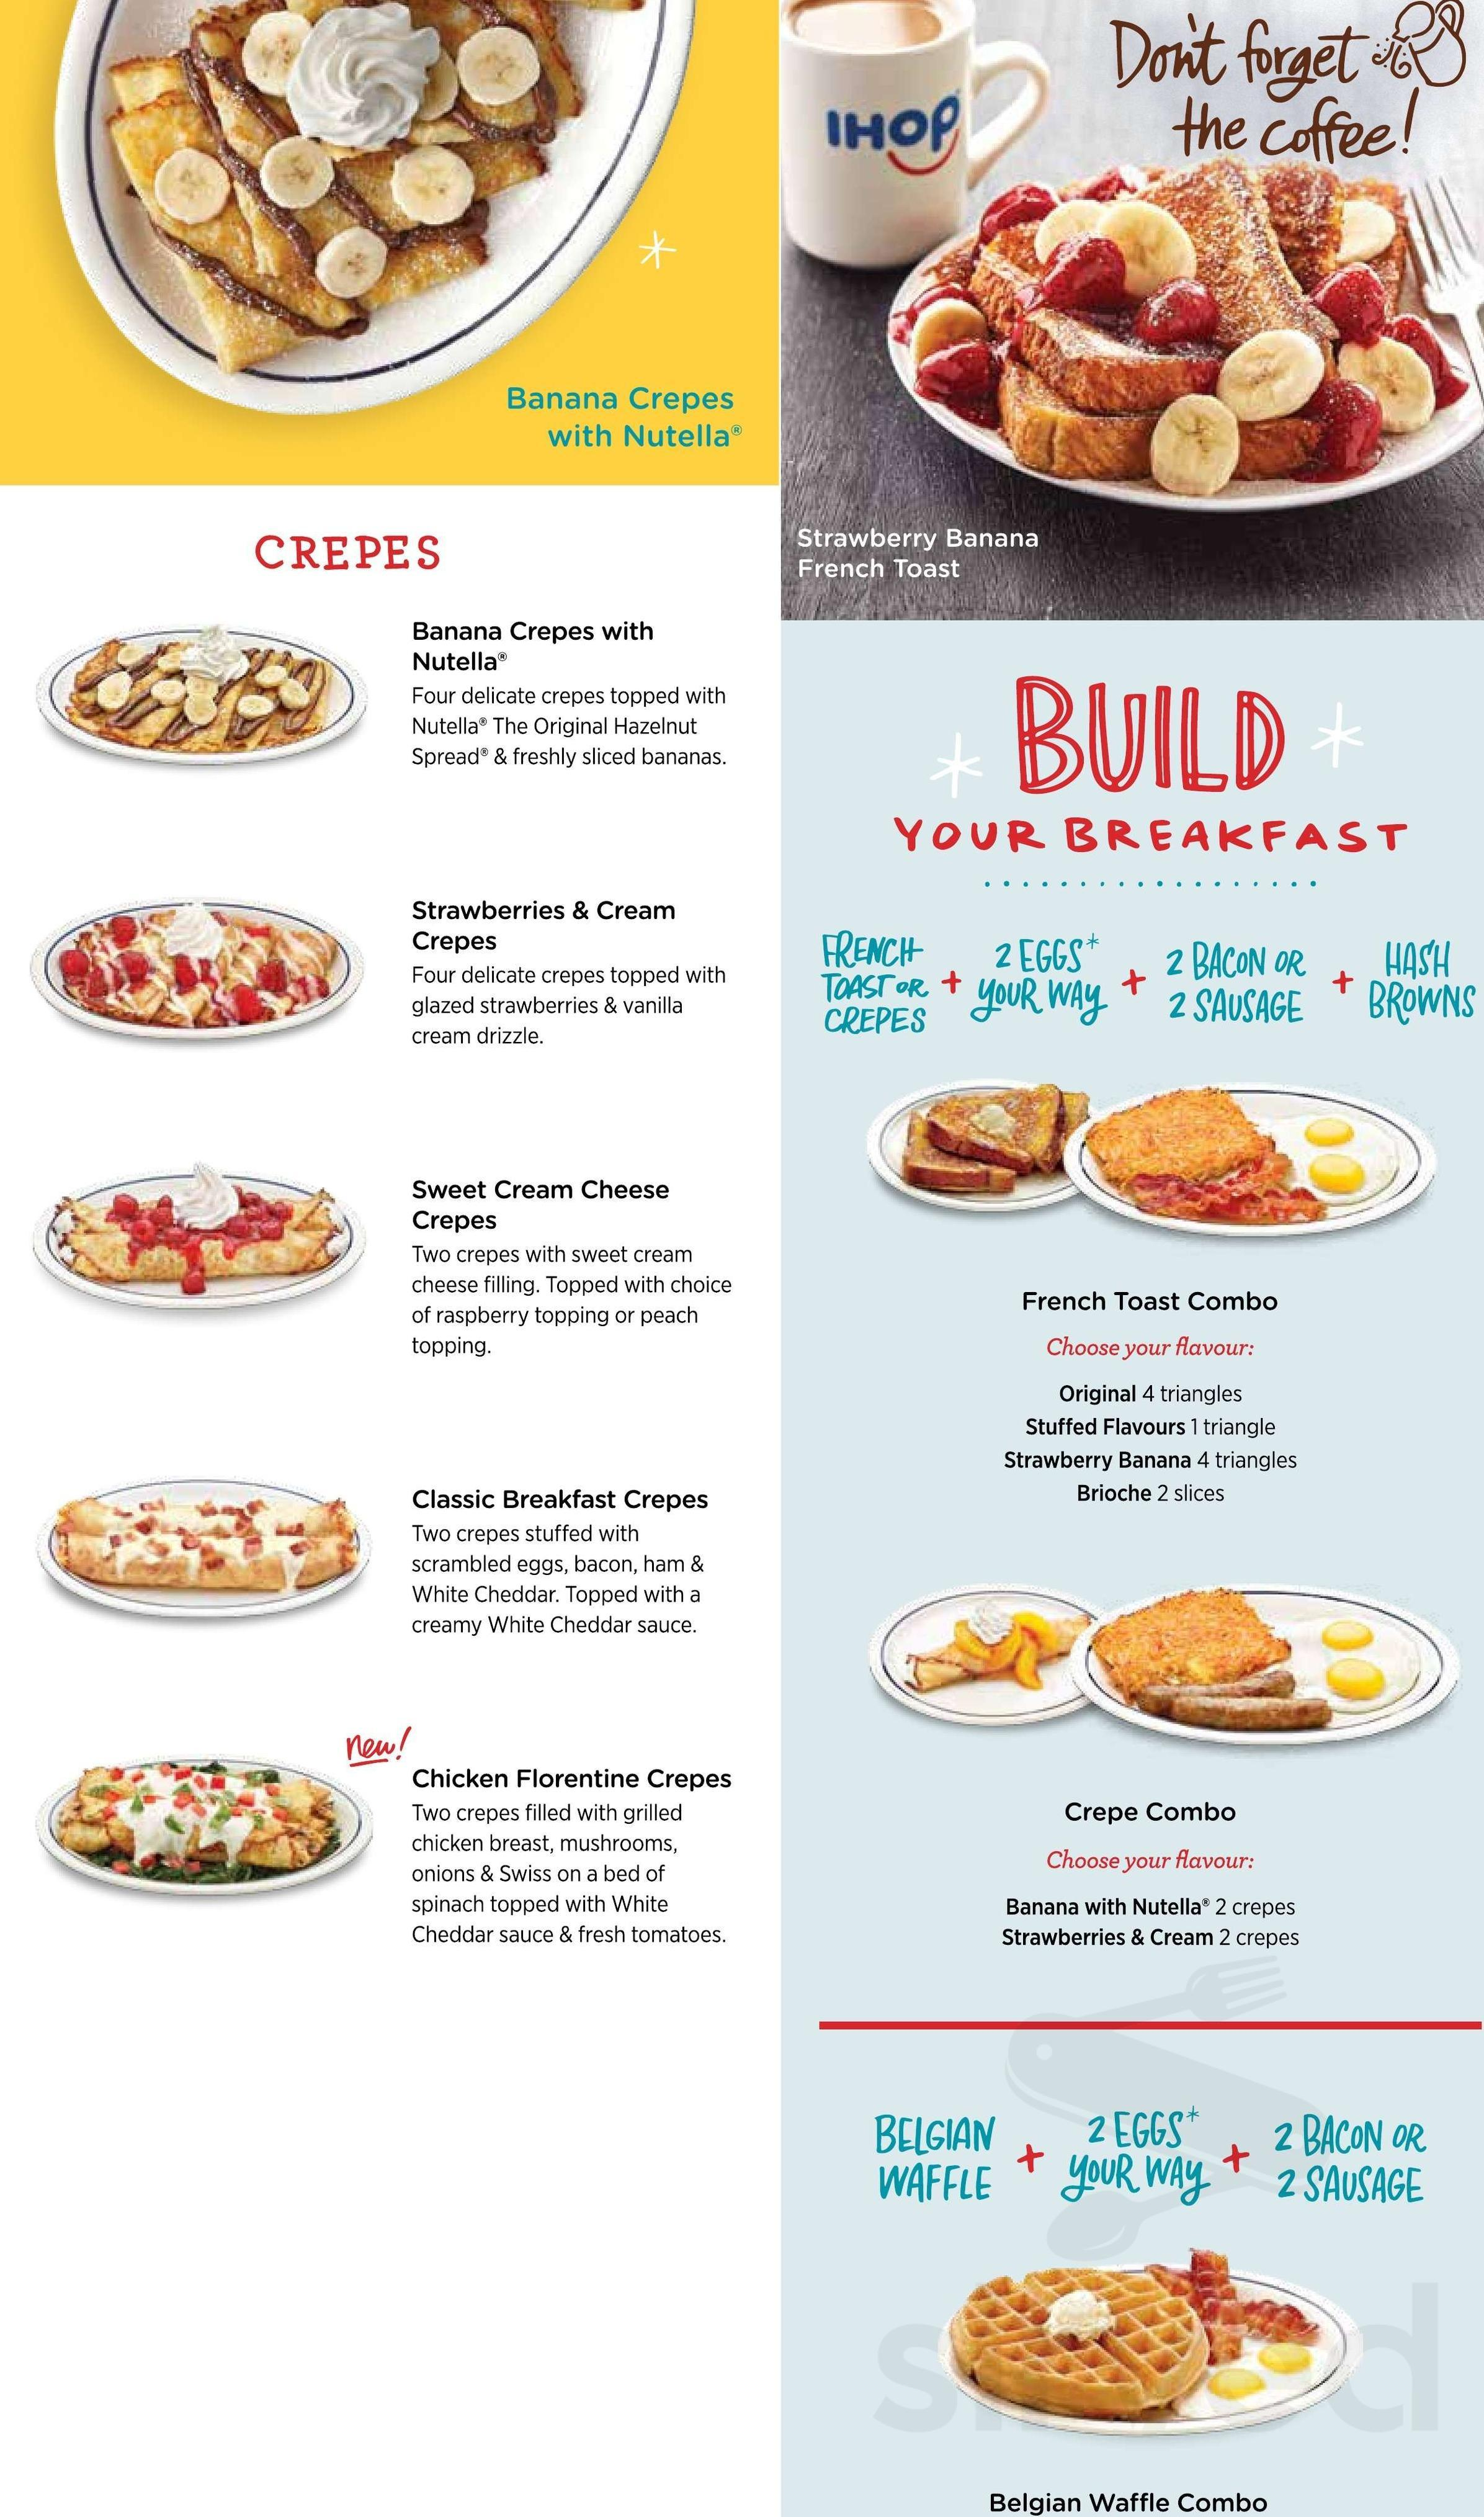 Menu for IHOP in New Westminster, British Columbia, Canada